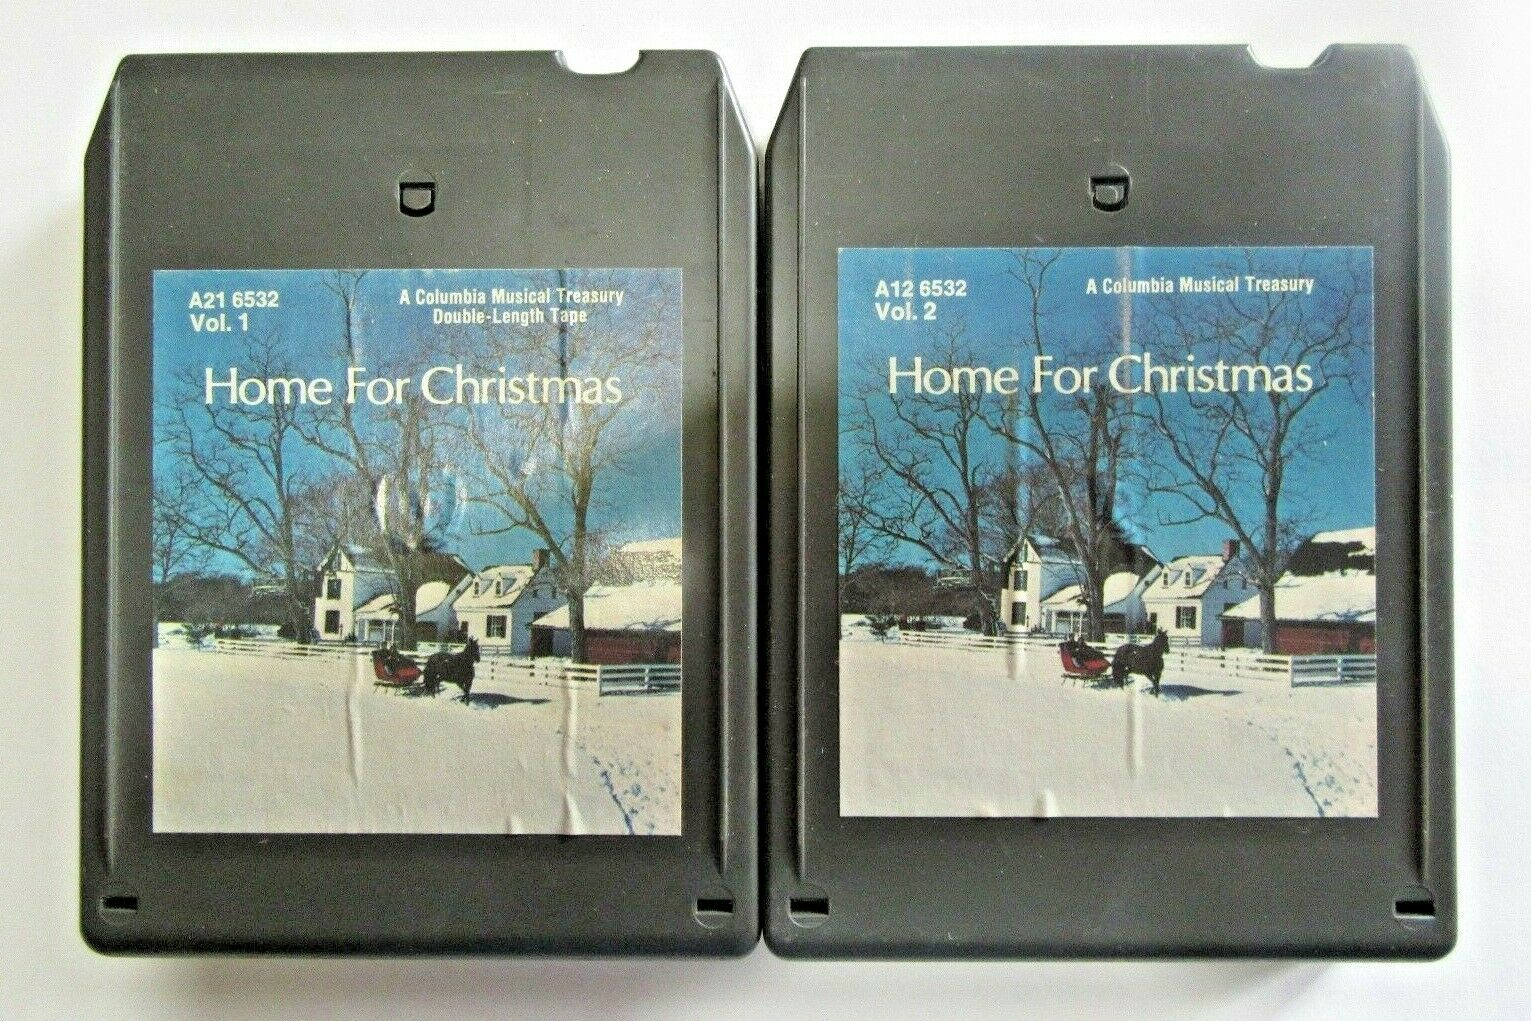 Home for Christmas 8 Track Tape Set Columbia Musical Treasury Vo